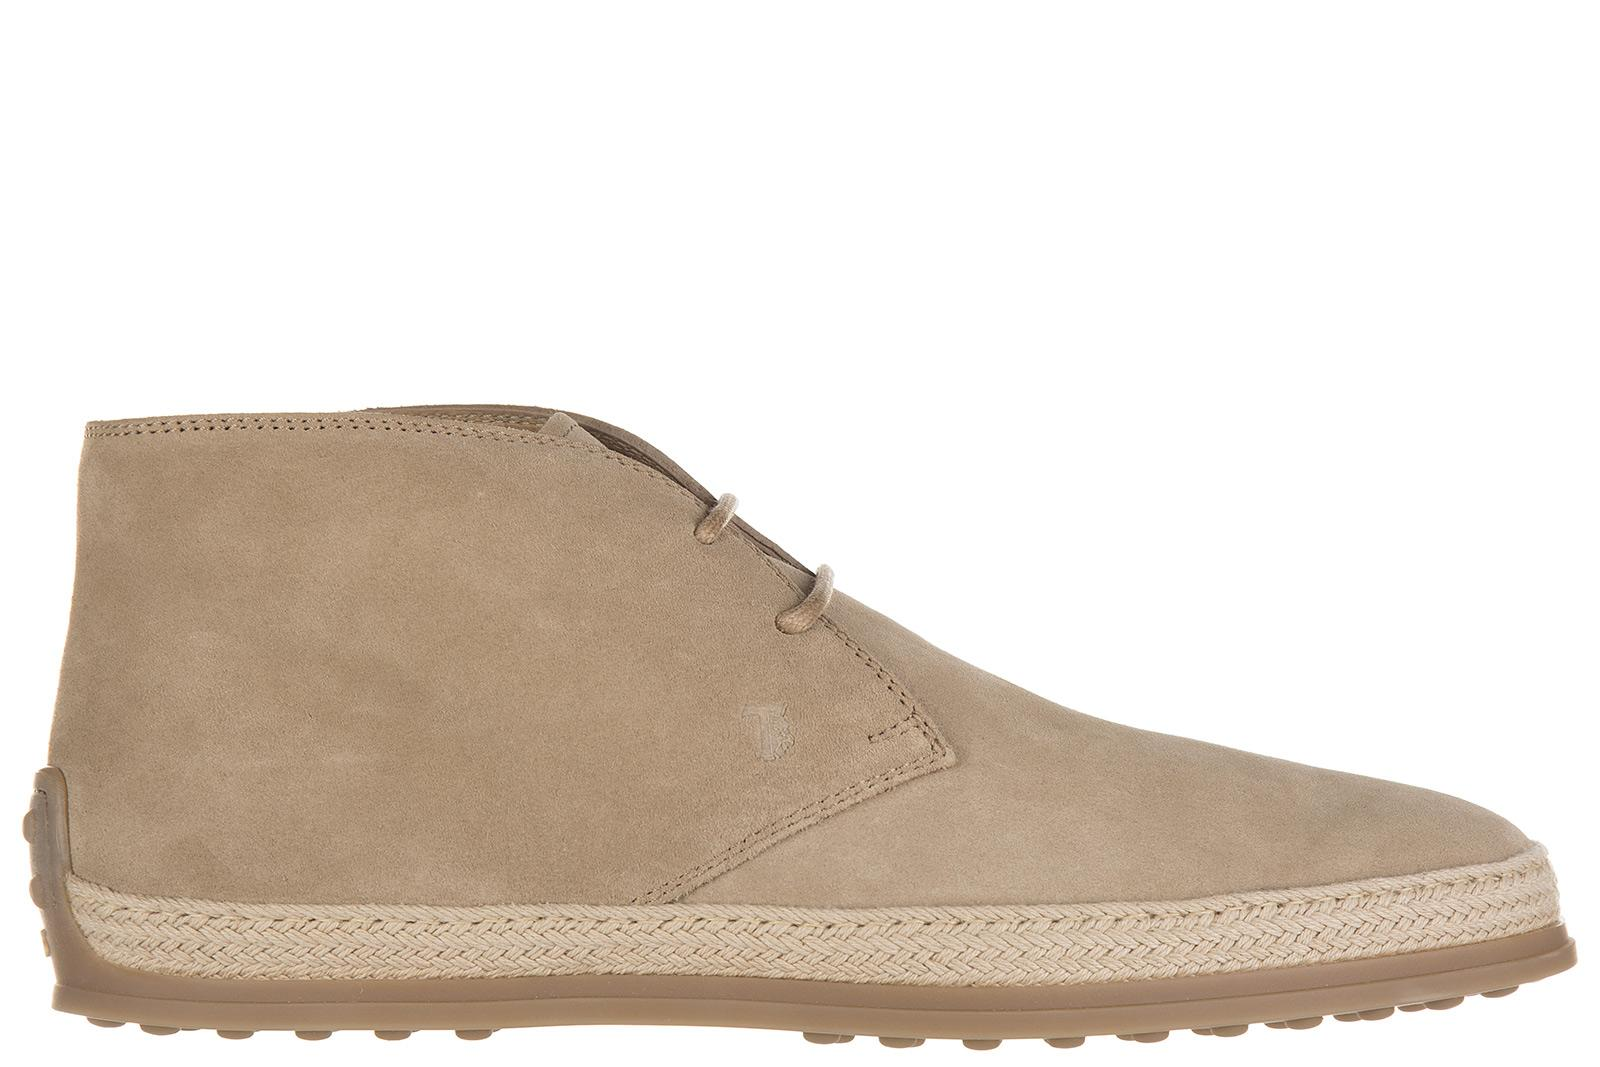 c9881dae8 Tod s Men s Suede Desert Boots Lace Up Ankle Boots Rafia In Beige ...